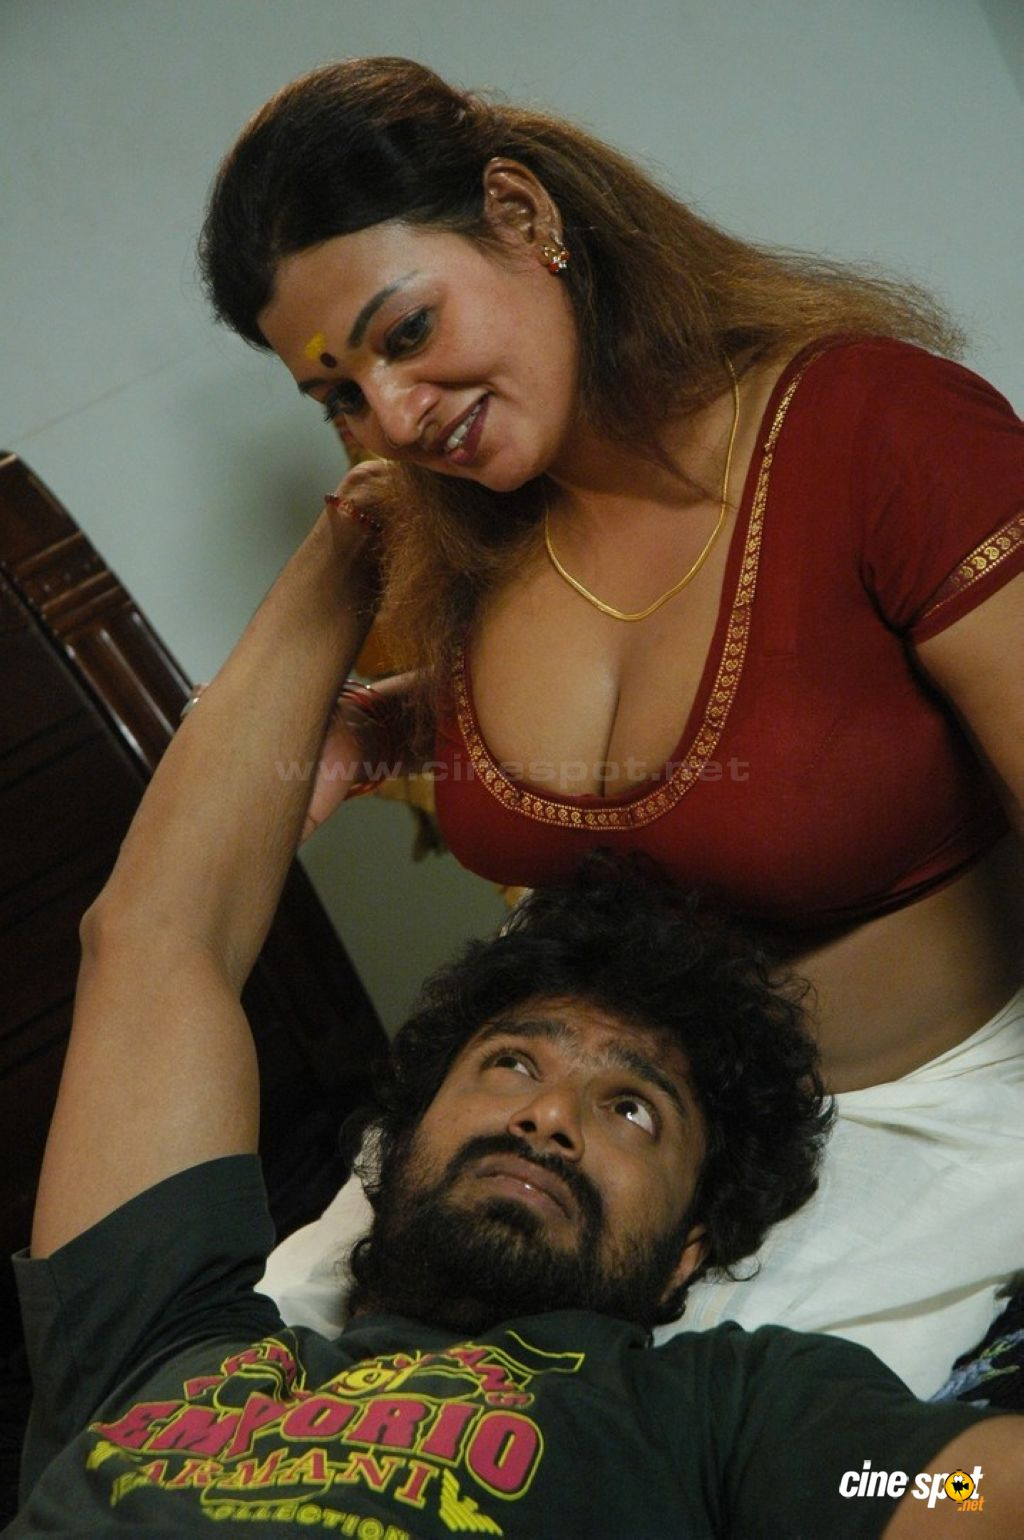 http://3.bp.blogspot.com/_WTnXc_vrCBs/TLGNkxuEnRI/AAAAAAAAE94/vMx7CV3IZsE/s1600/Thiruttu+Sirukki+Hot+sexy+spicy+tamil+movie+photos+_60_.JPG